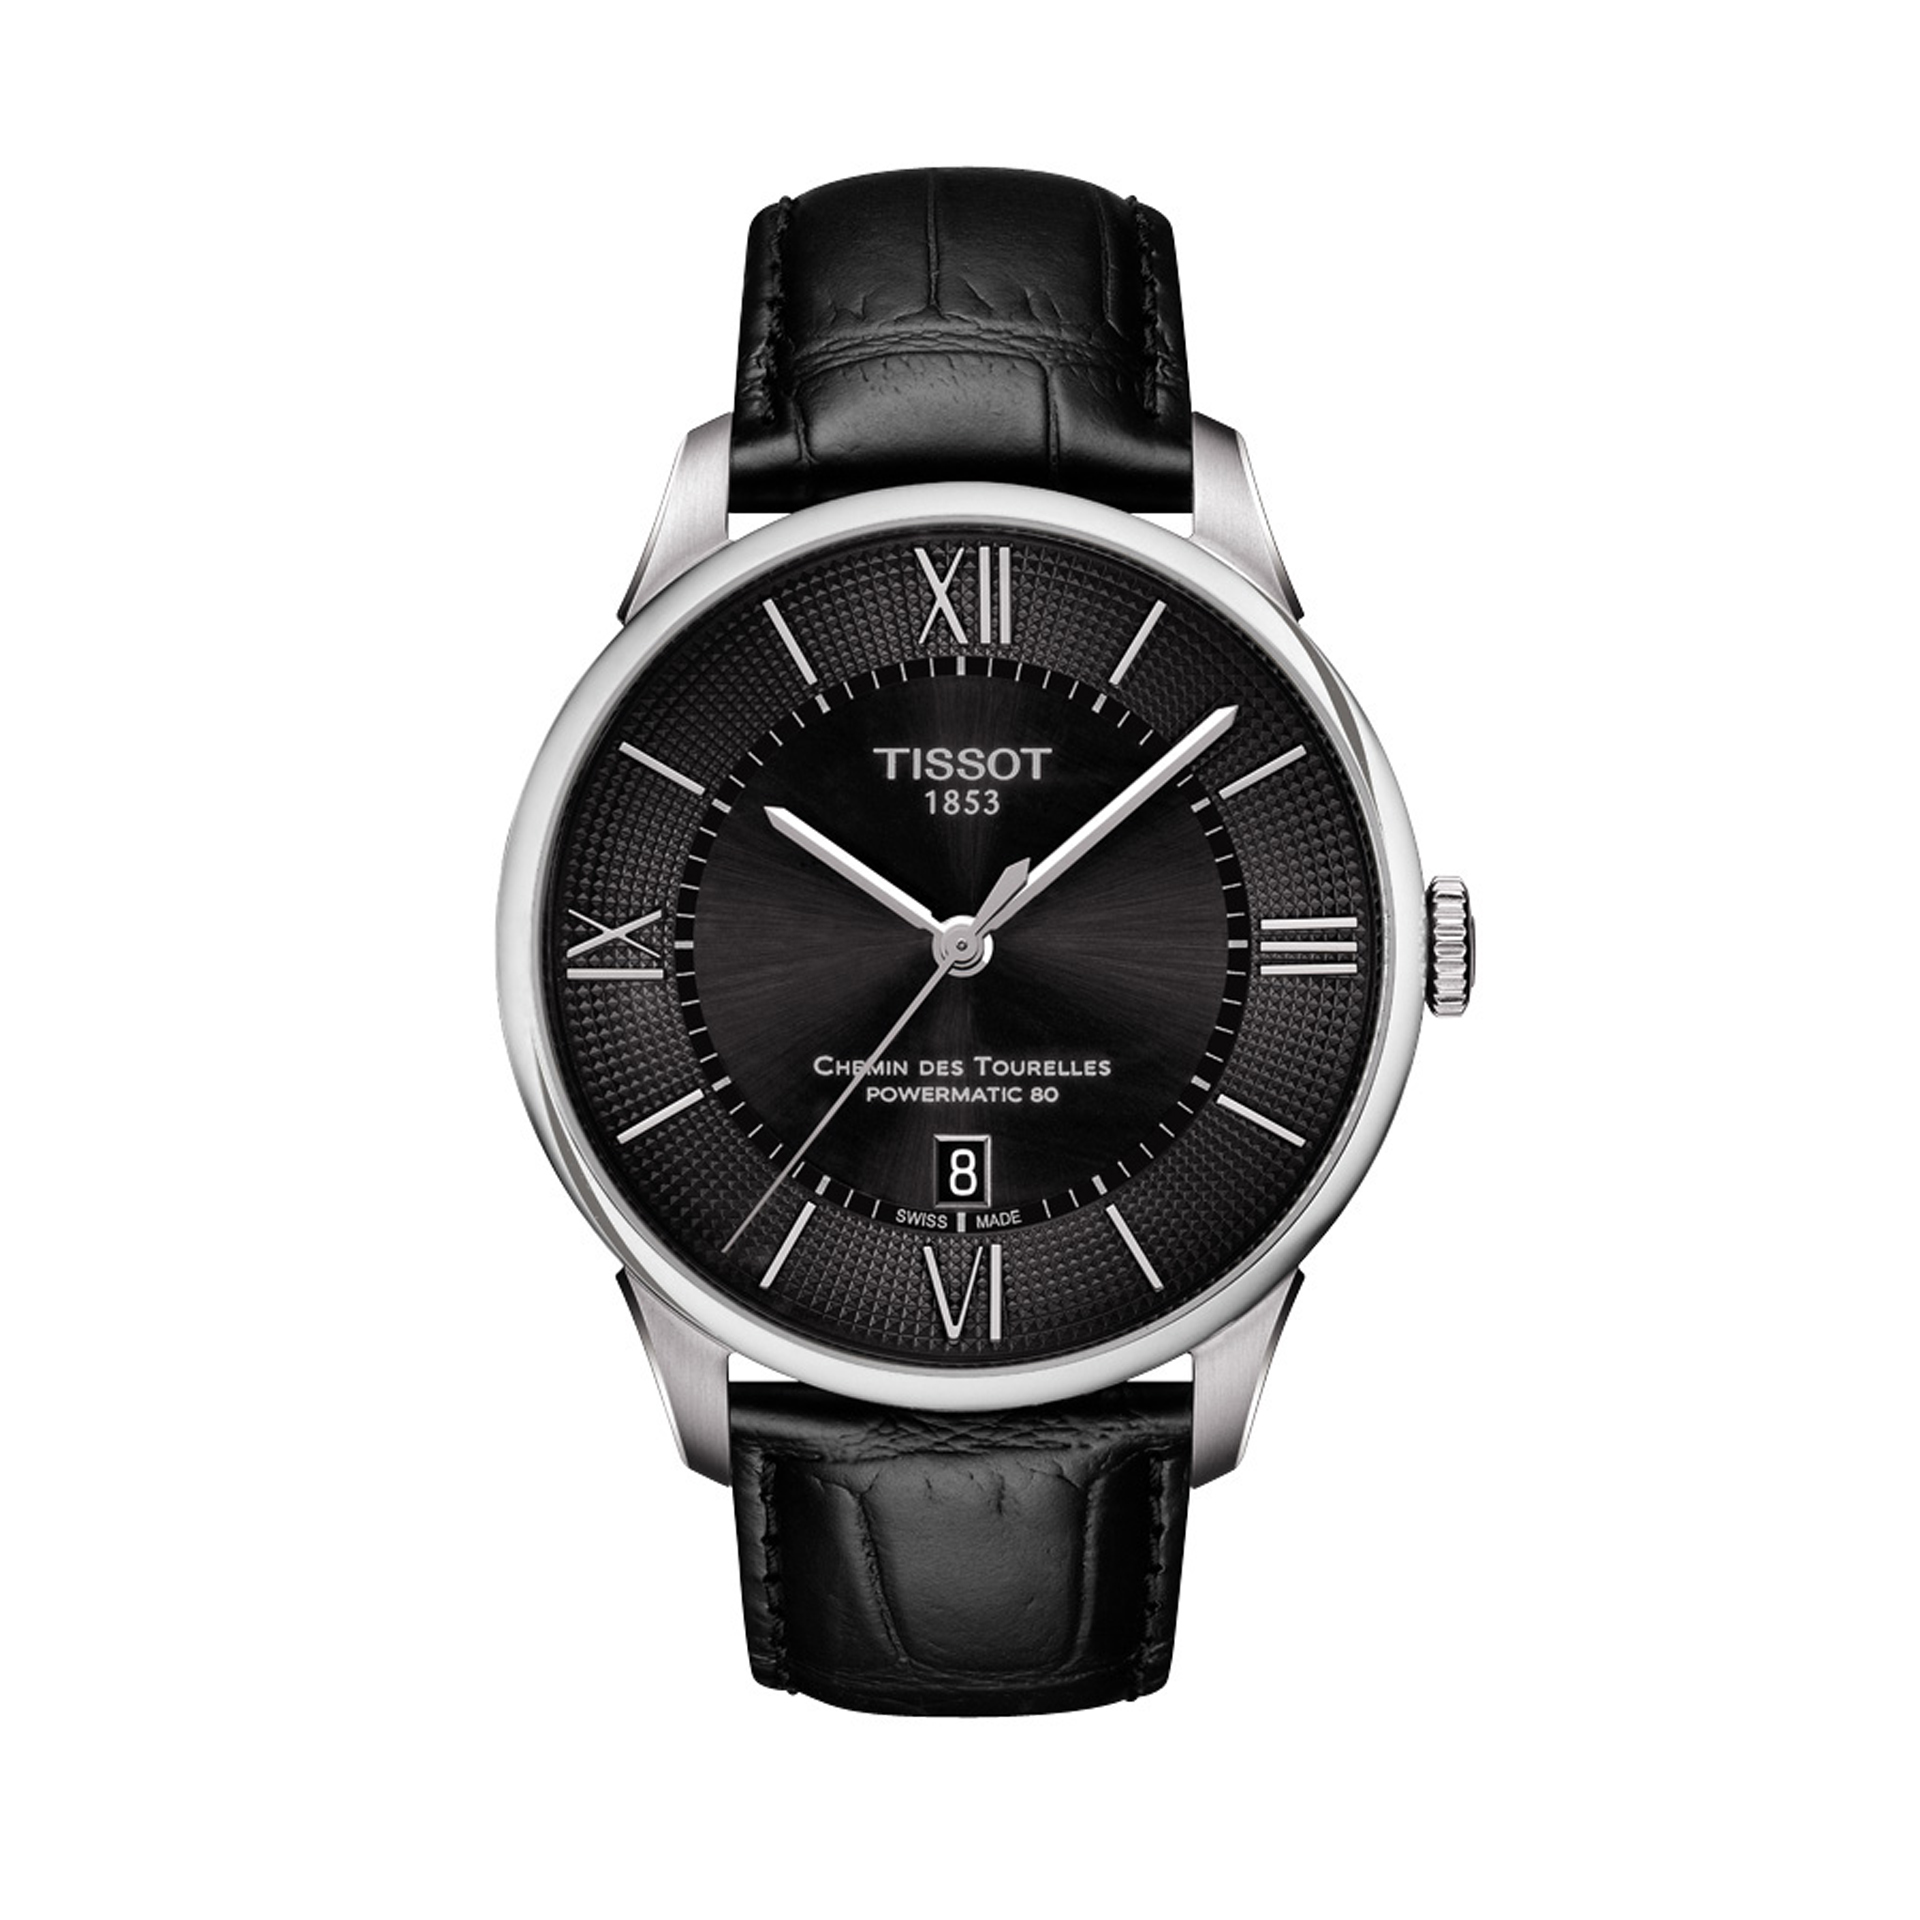 Tissot T Classic Chemin Des Tourelles Powermatic 80 Your